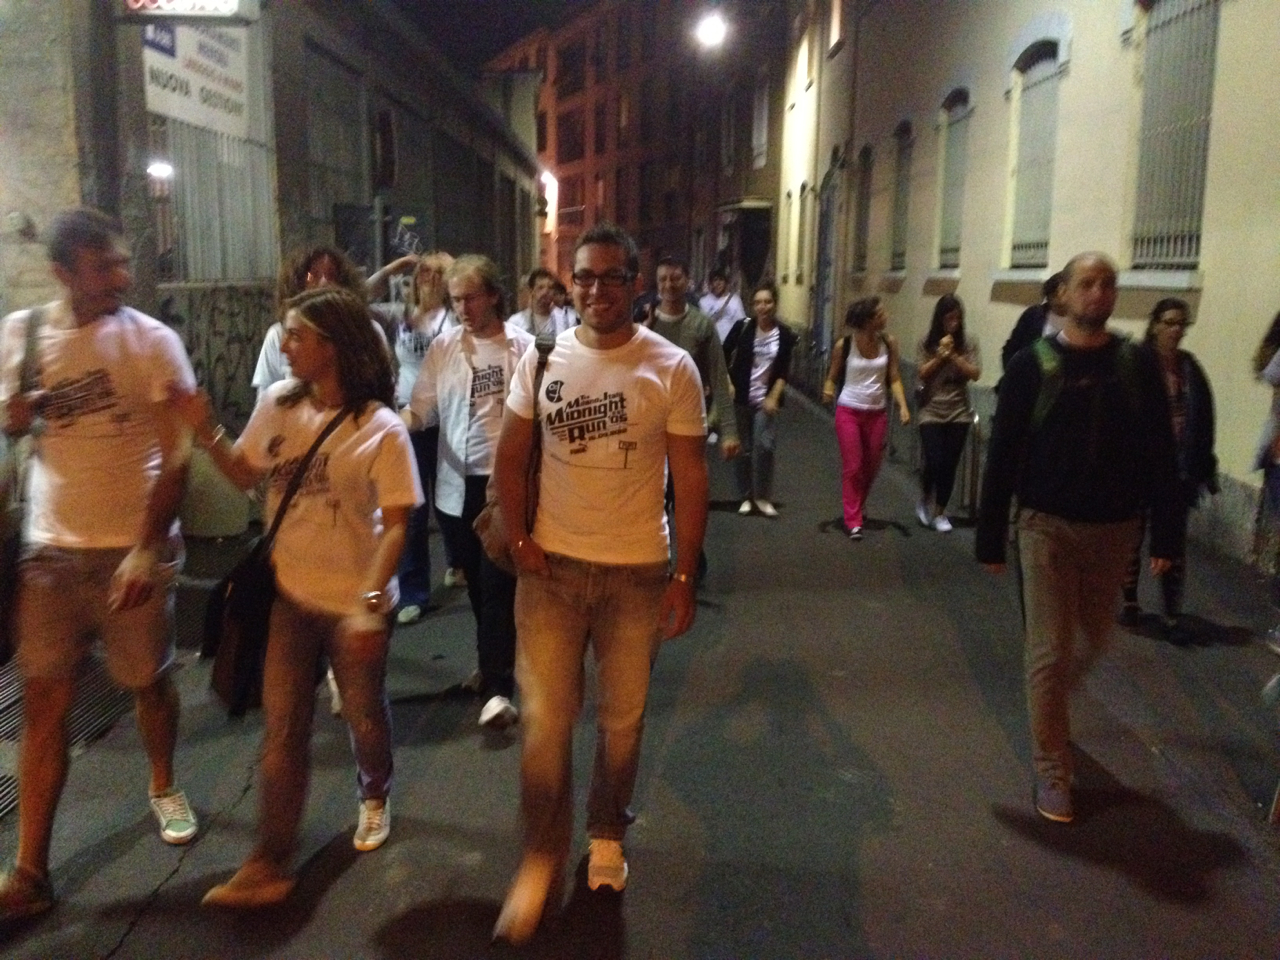 The Runners! #MidnightRun #Milan